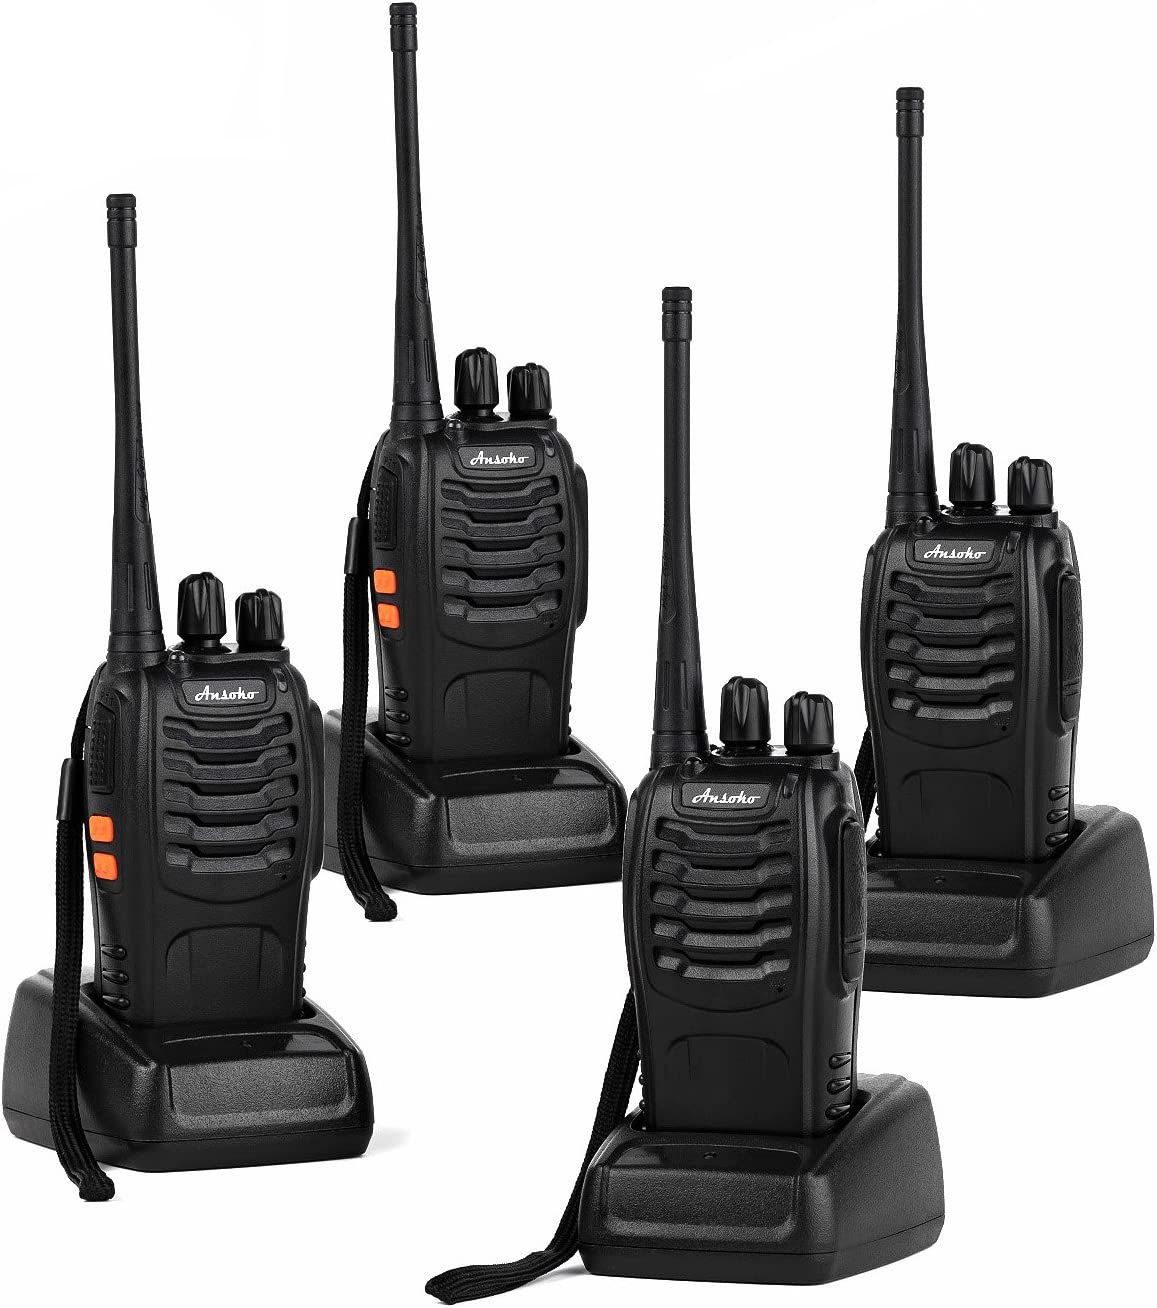 Ansoko Long Range Walkie Talkies Rechargeable Two Way Radios FRS GMRS 16-Channel UHF 2-Way Radio for Adults Pack of 4